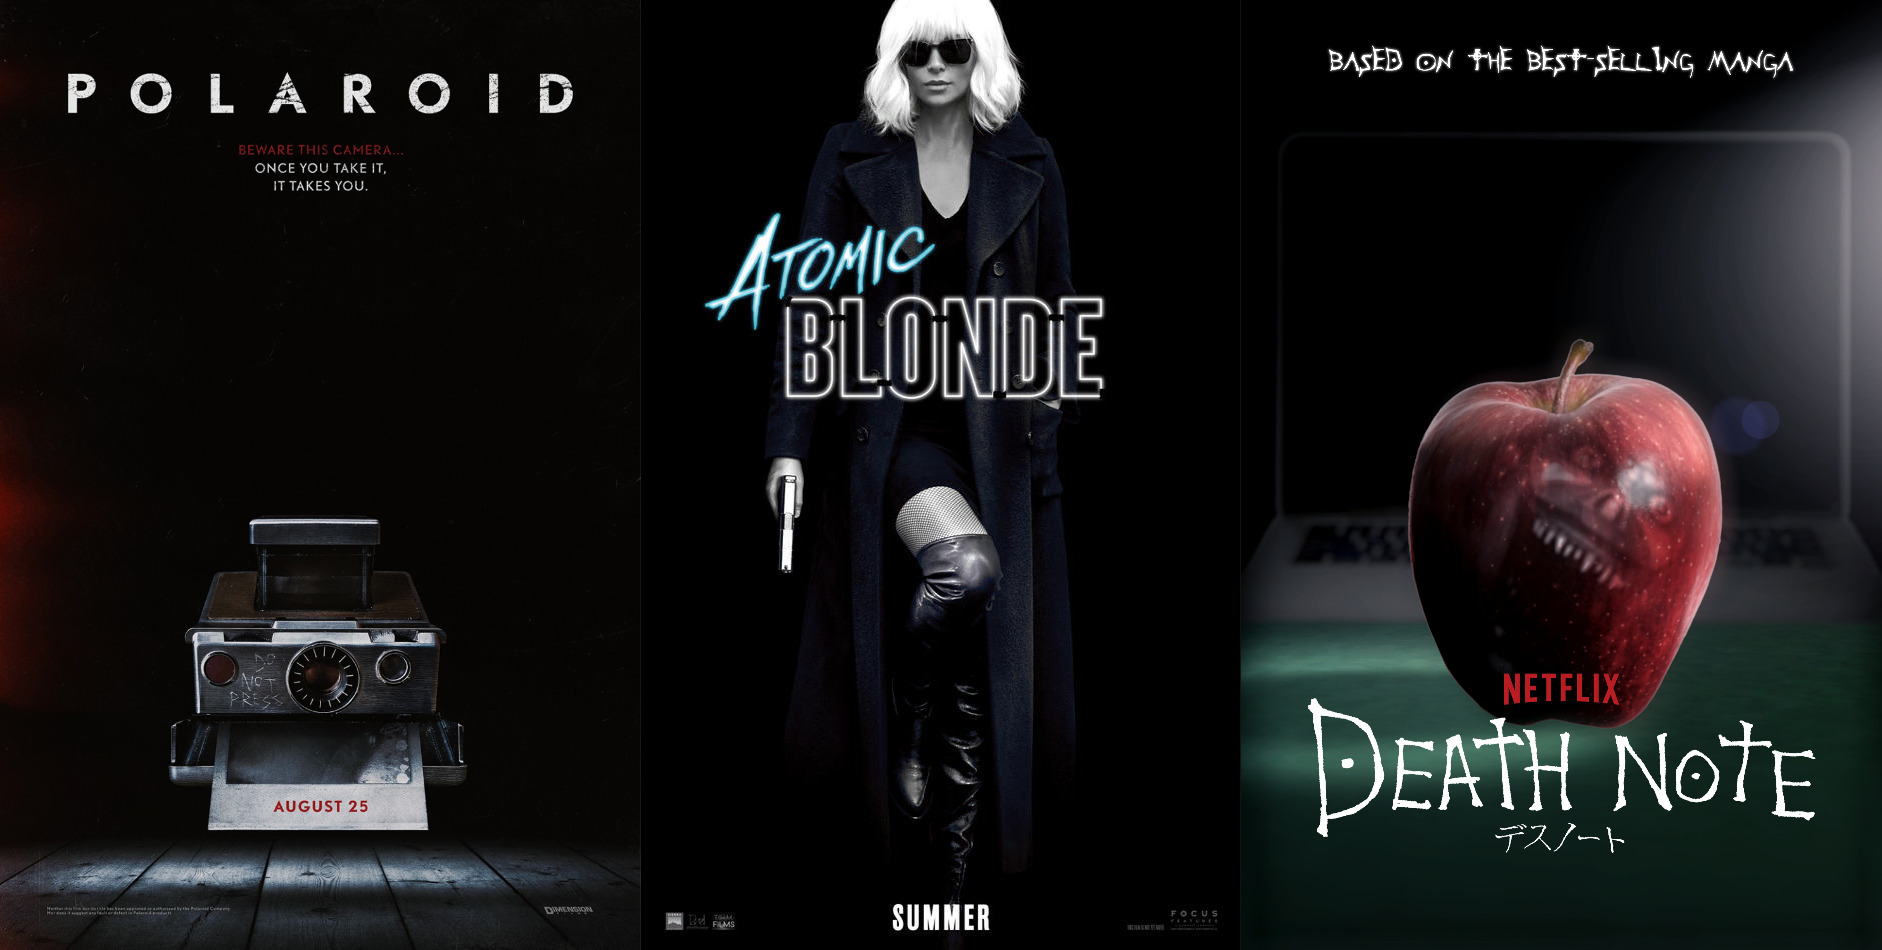 Trailer-Watchin' Wednesday - Death Note, Polaroid, Atomic Blonde, T2 3D